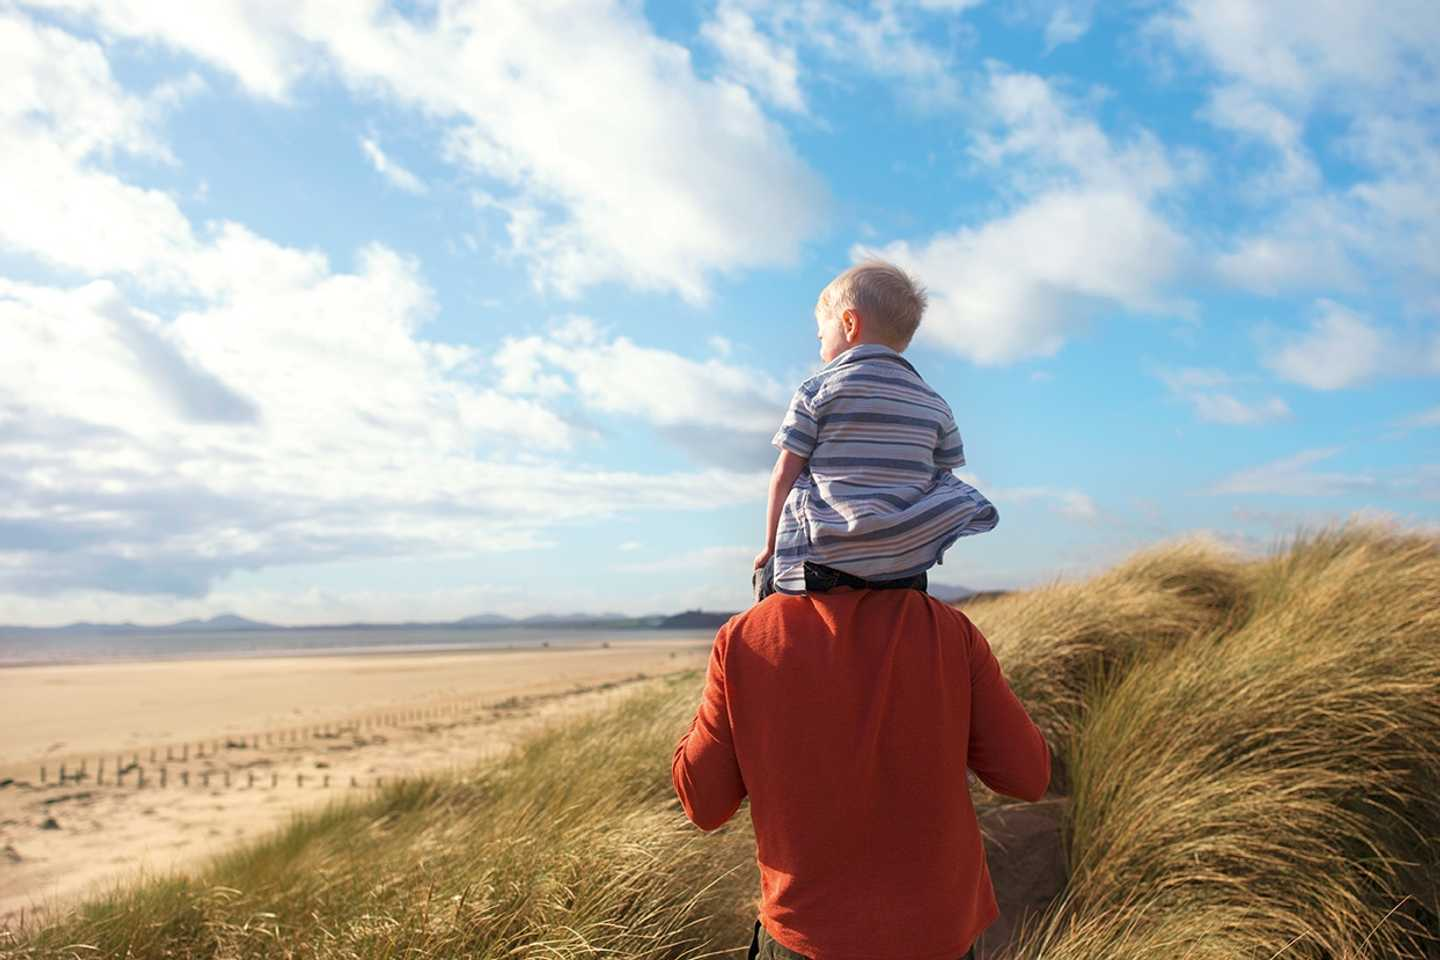 Father and child looking out over the beach